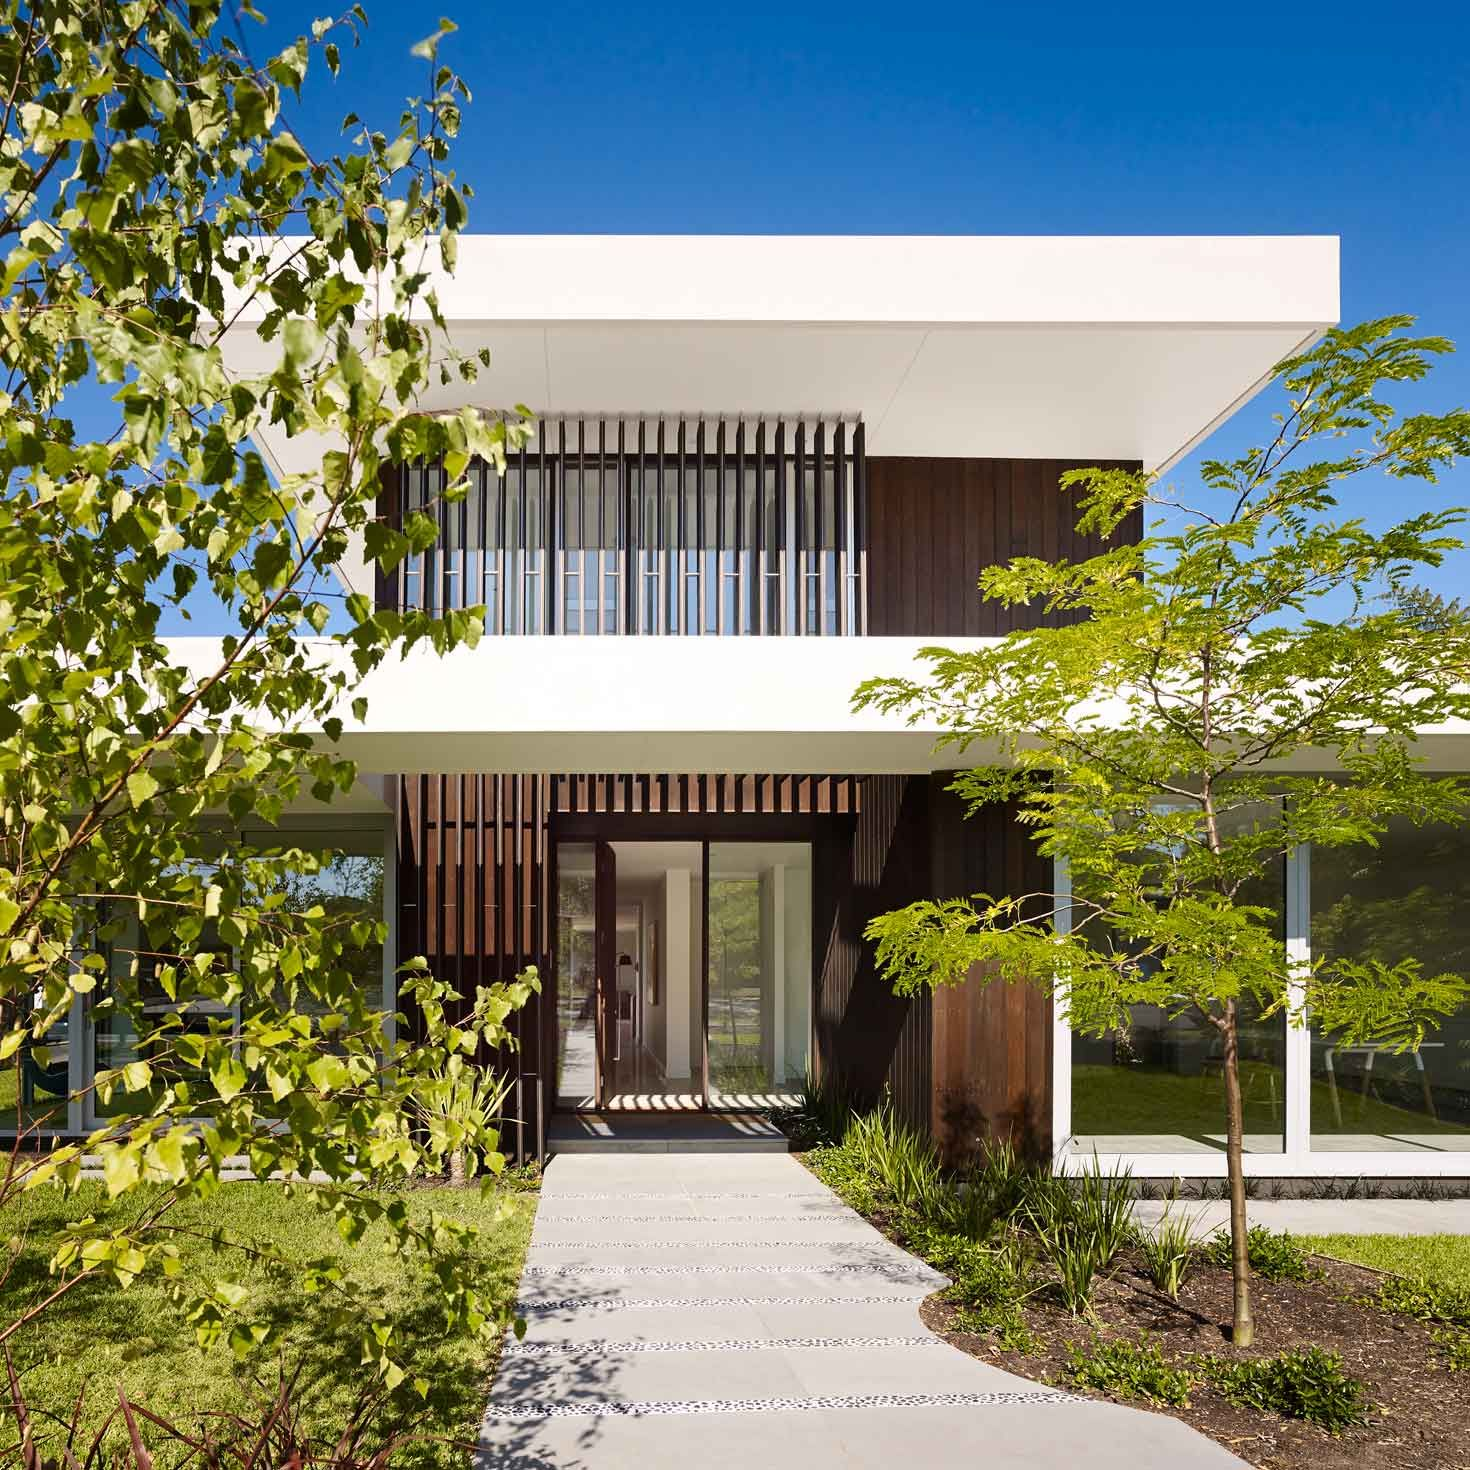 This modernist inspired architecture with deep horizontal roof planes extensive glazing and emphasis on outdoor living is perfectly suited to the